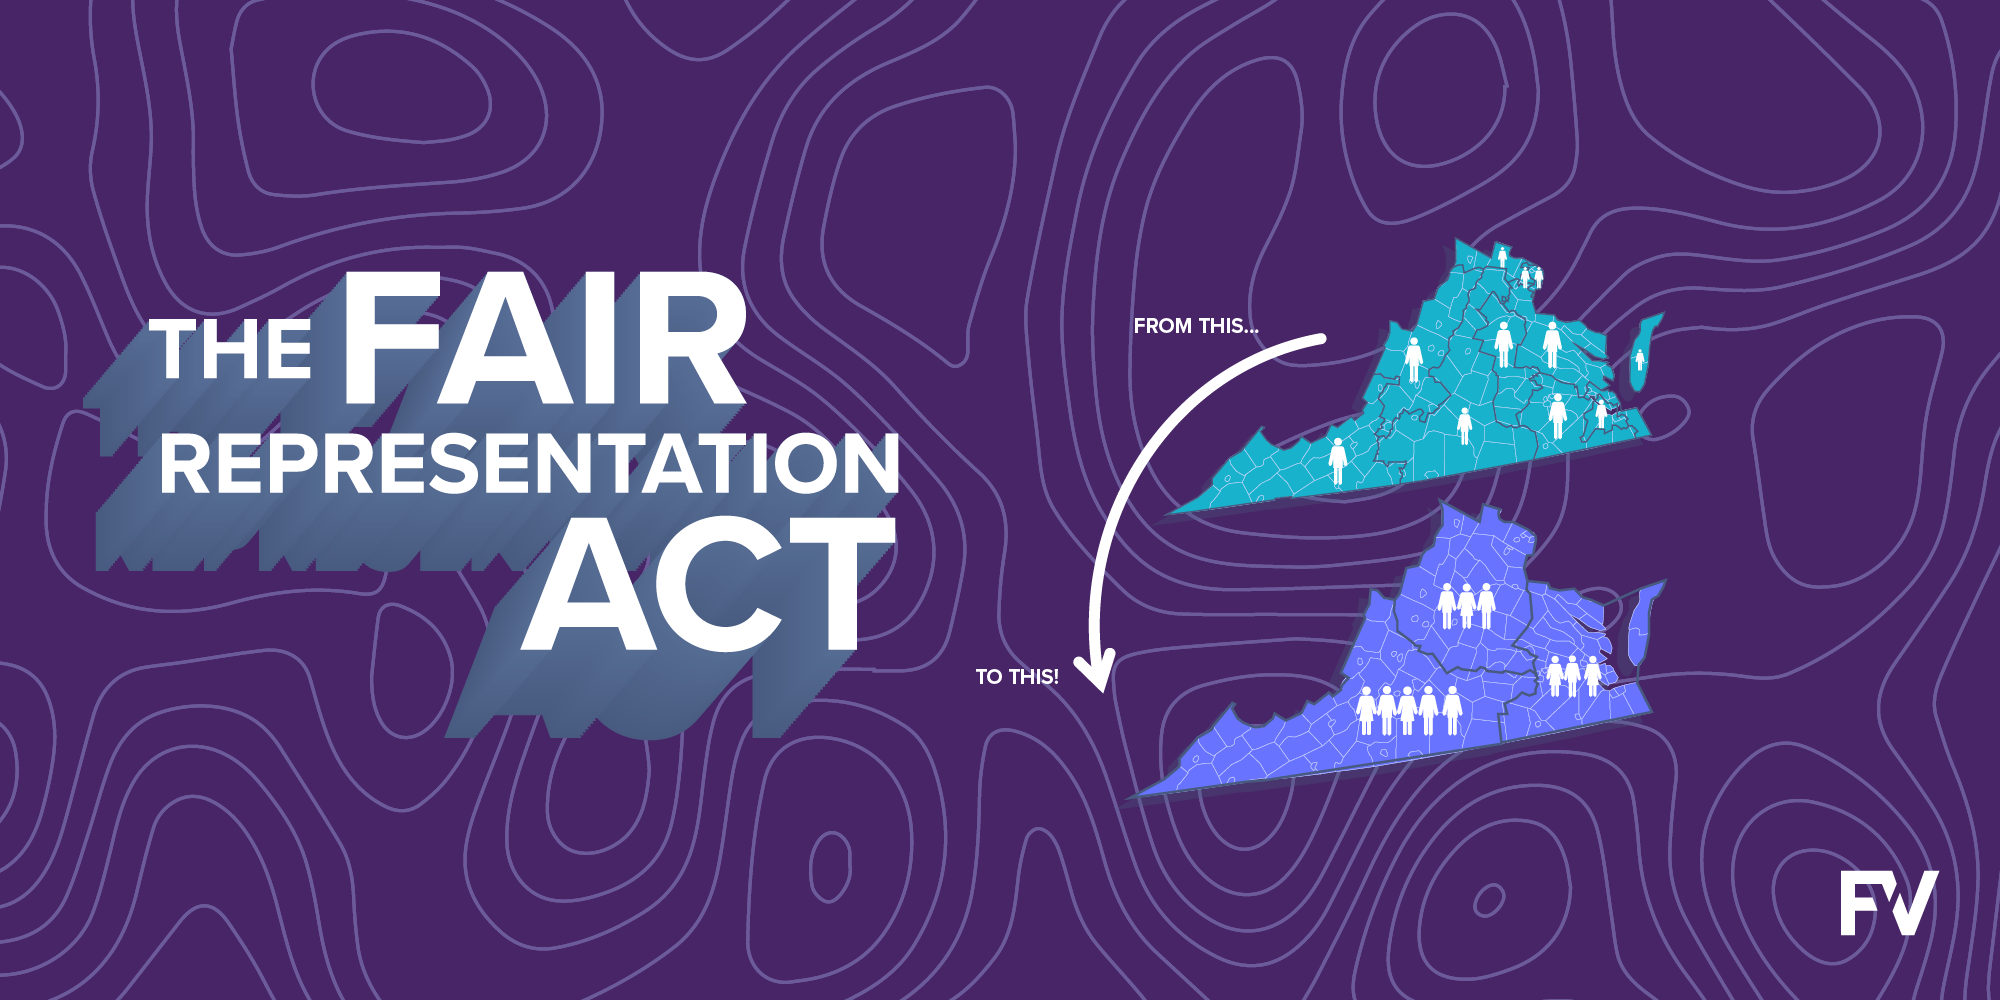 The Fair Representation Act